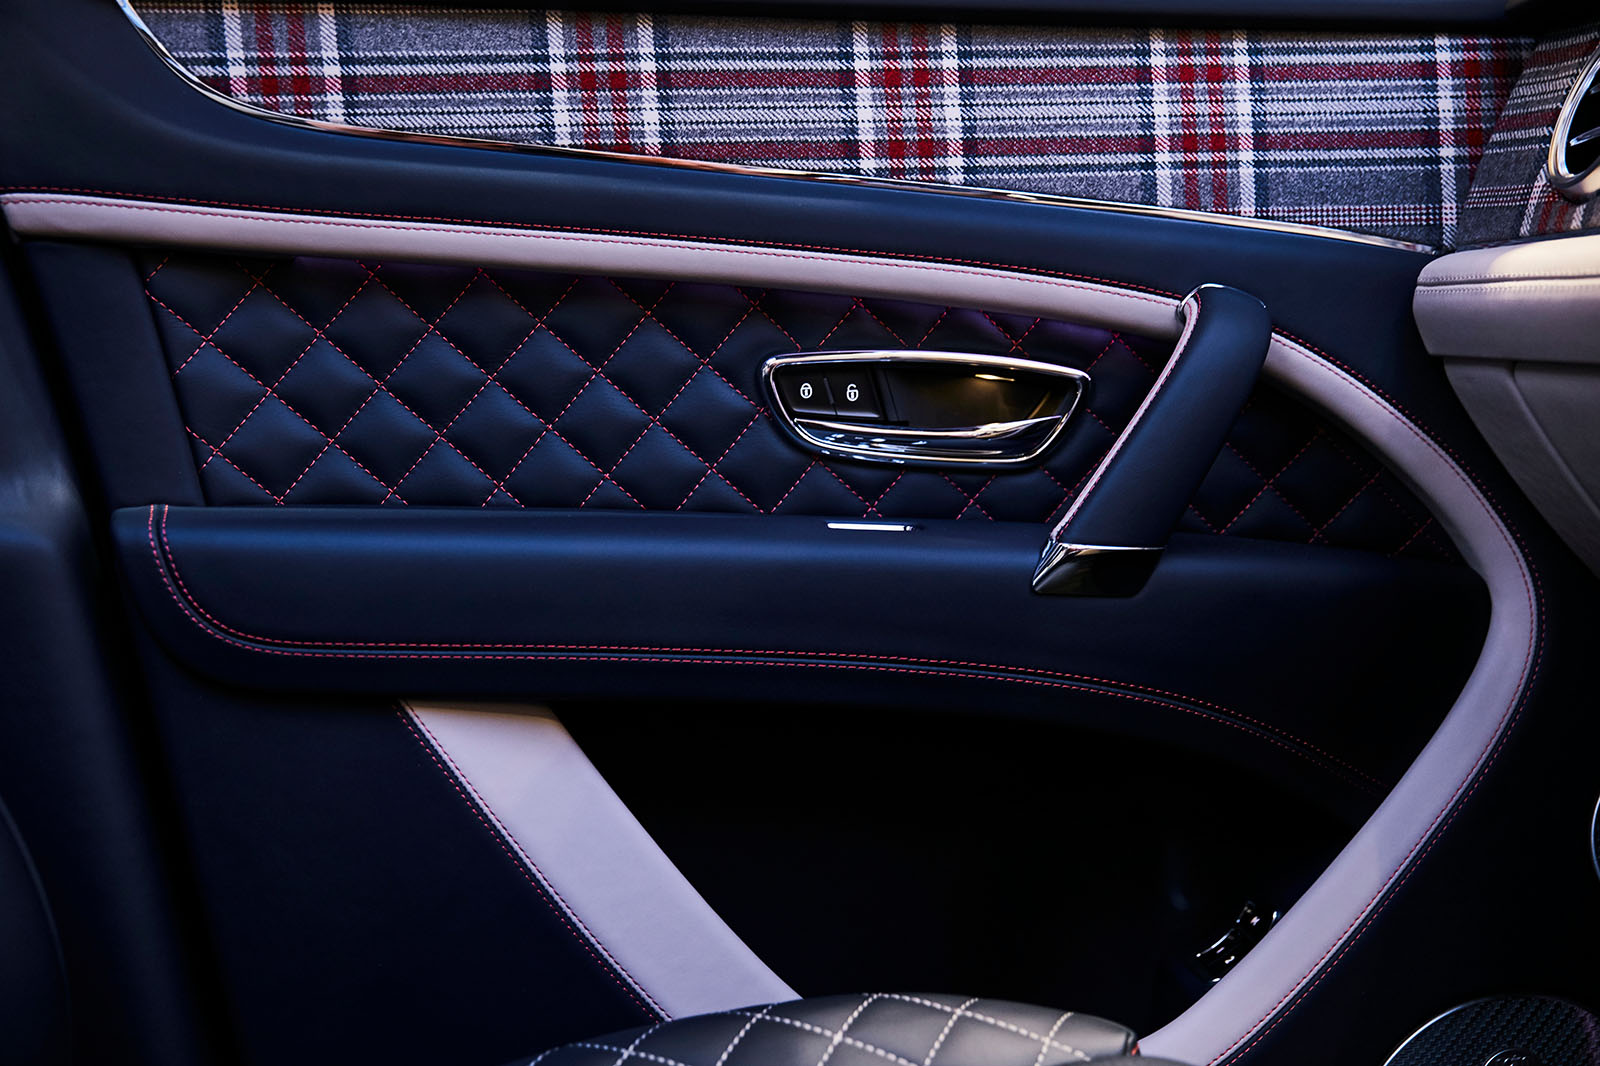 Limited Edition Bentley Bentayga Features Plaid Interior And Chessboard Autocar